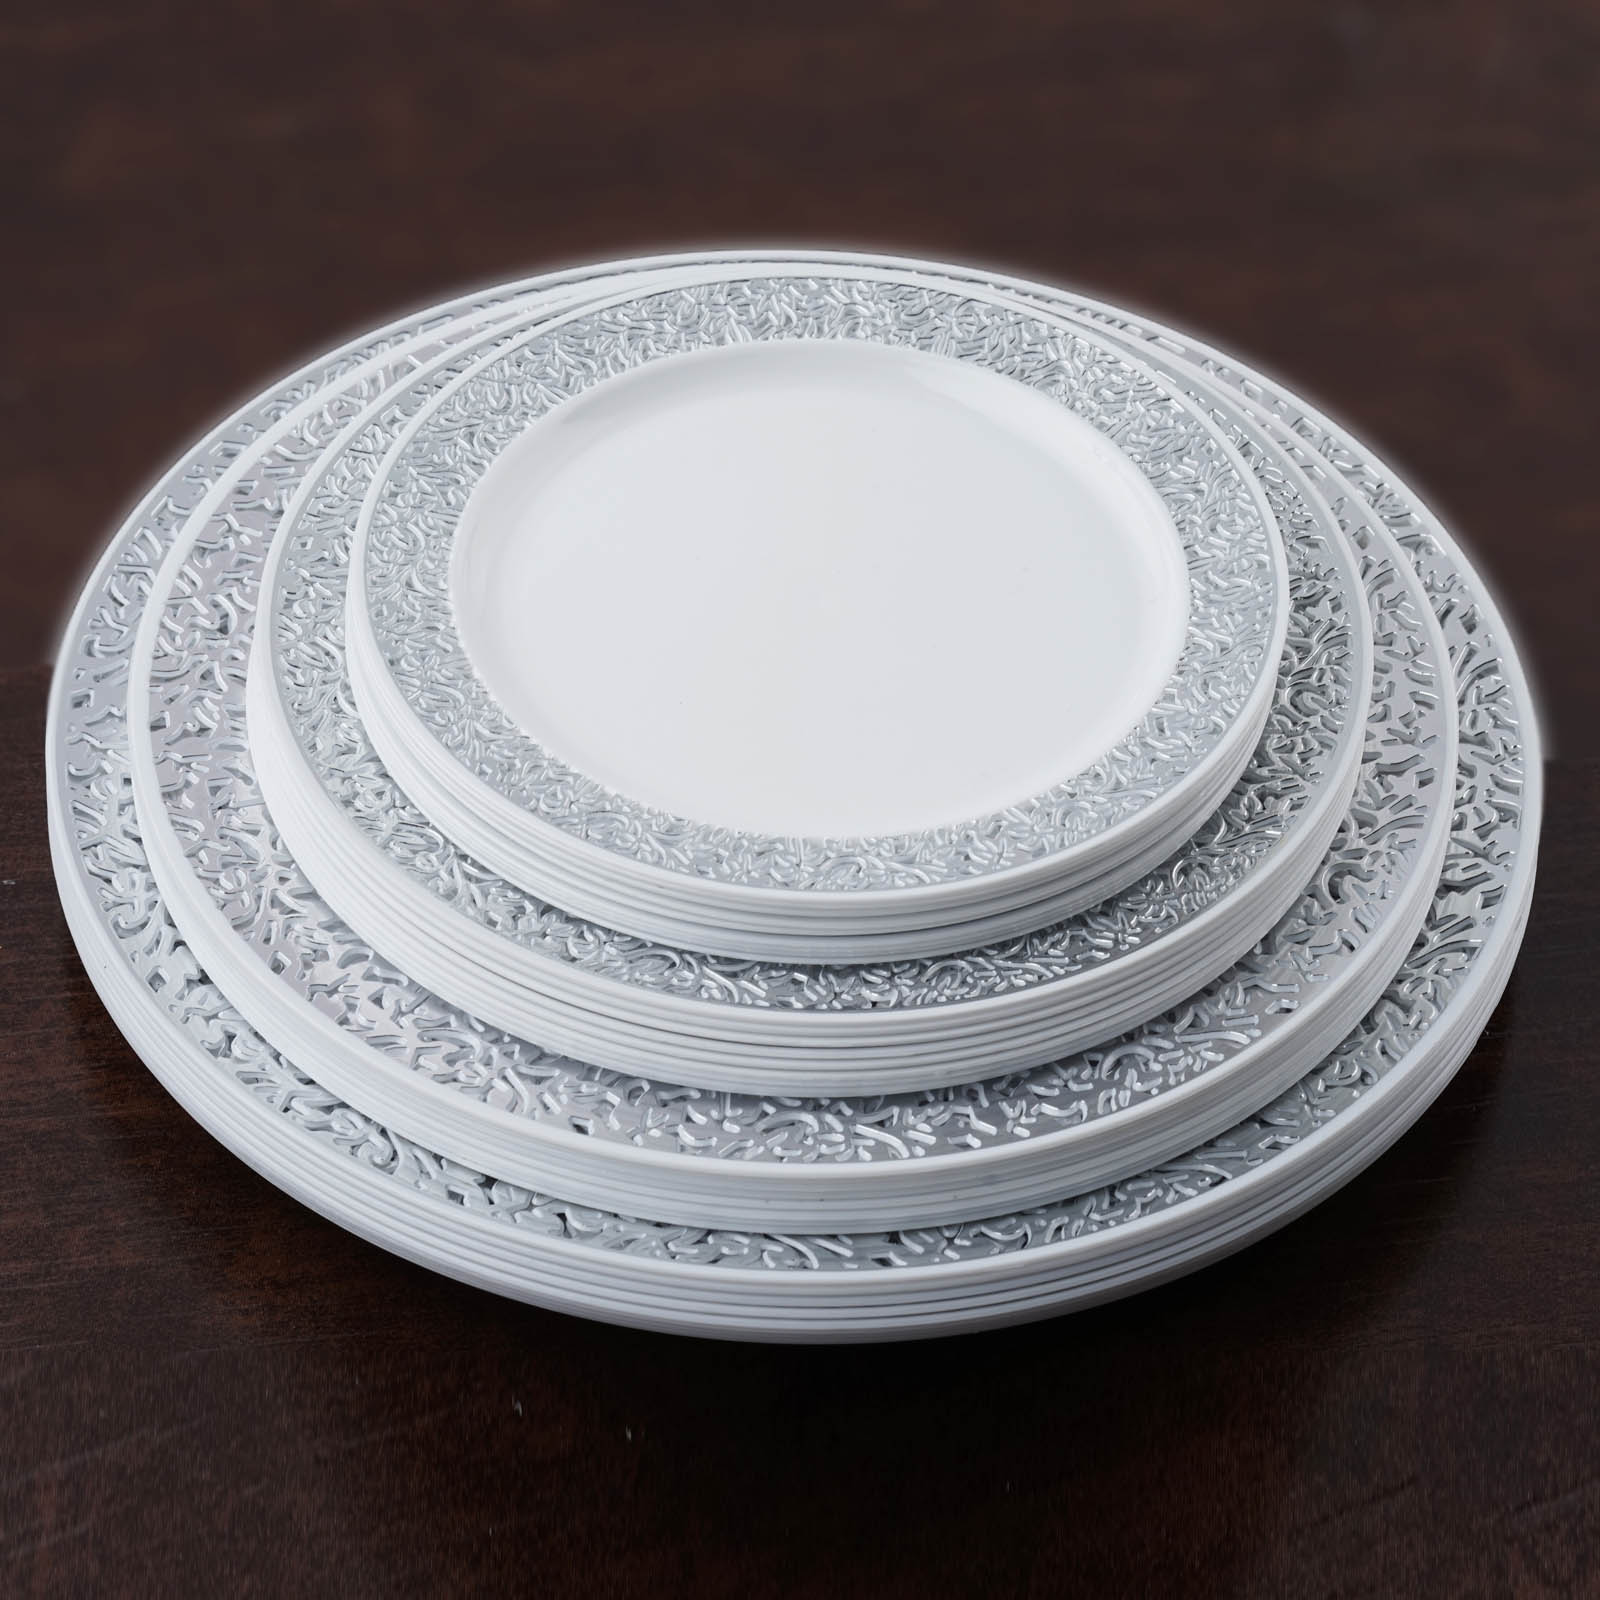 SALE. Quick View. Sale $ Was $66 appzdnatw.cf carries sets of plates with four, six, and eight plates included to meet the needs of any size family. Set a traditional dinner table with round or square plates, or opt for a unique look with plates in an unusual shape, such as a leaf. Plates made from durable melamine are an excellent.